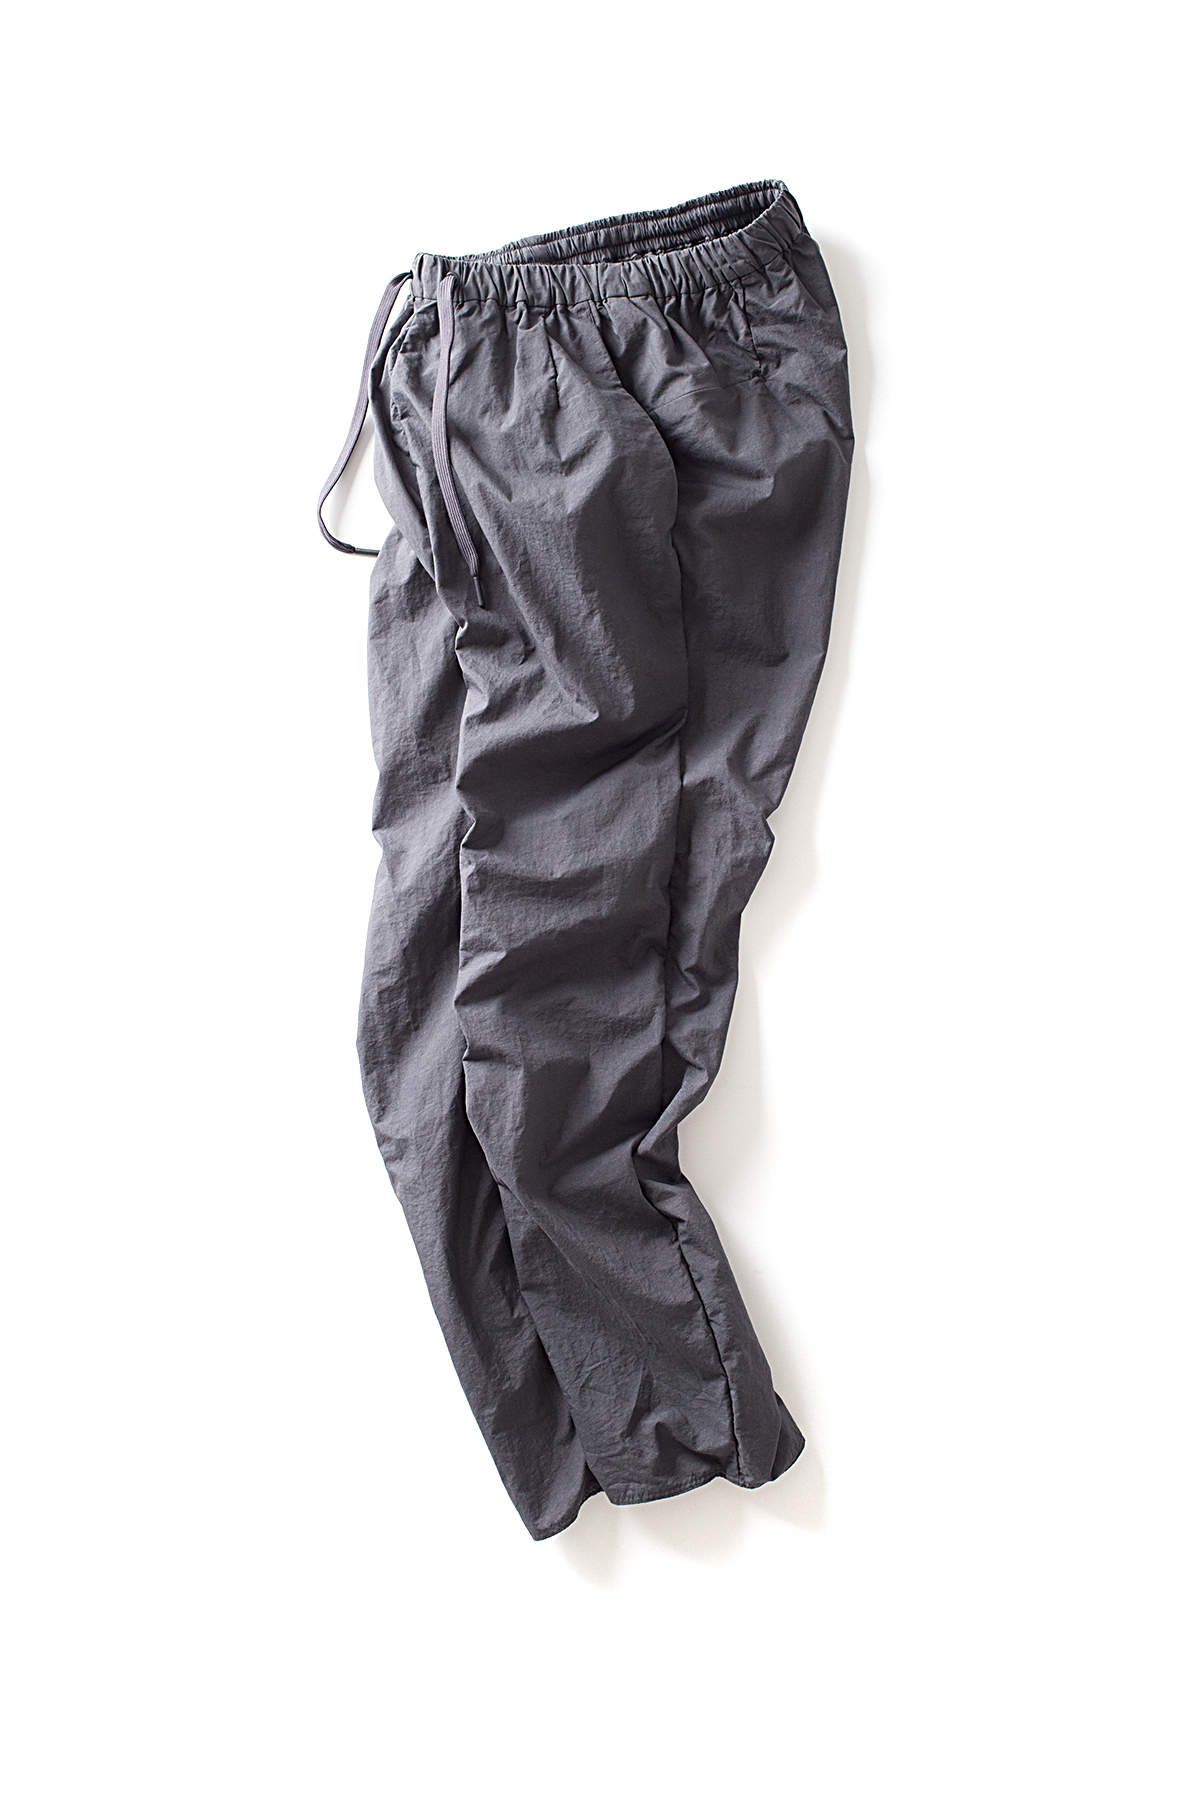 TEATORA : Wallet Pants P (Carbon Gray)